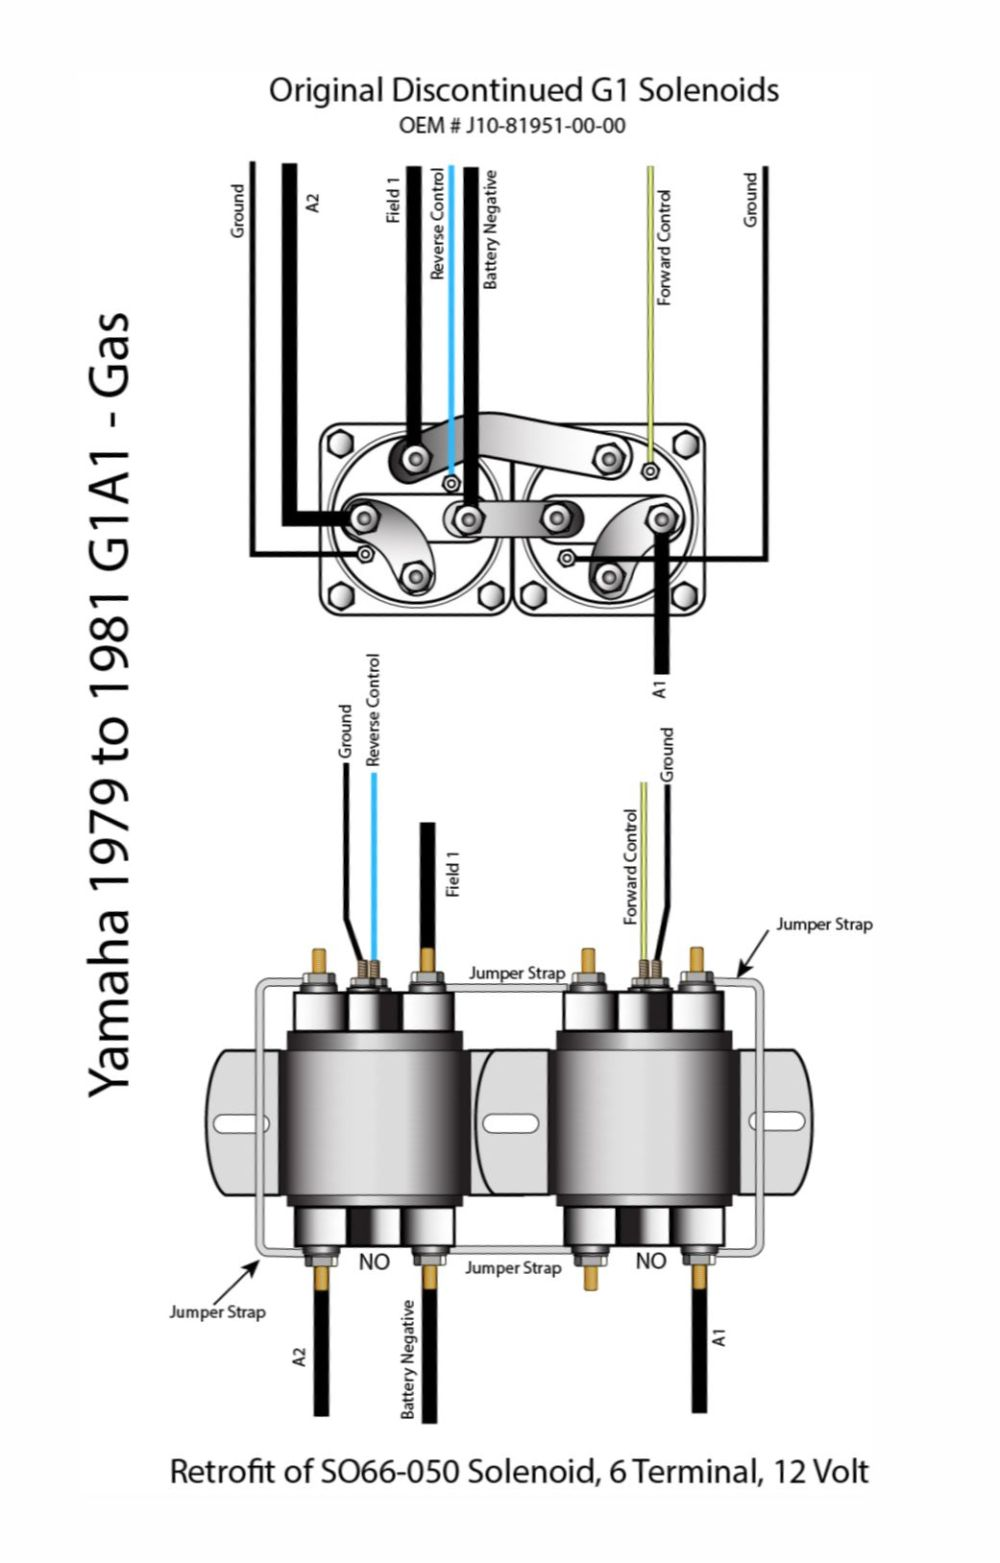 medium resolution of wiring diagrams wiring to retrofit 1979 to 1981 gas g1 solenoids